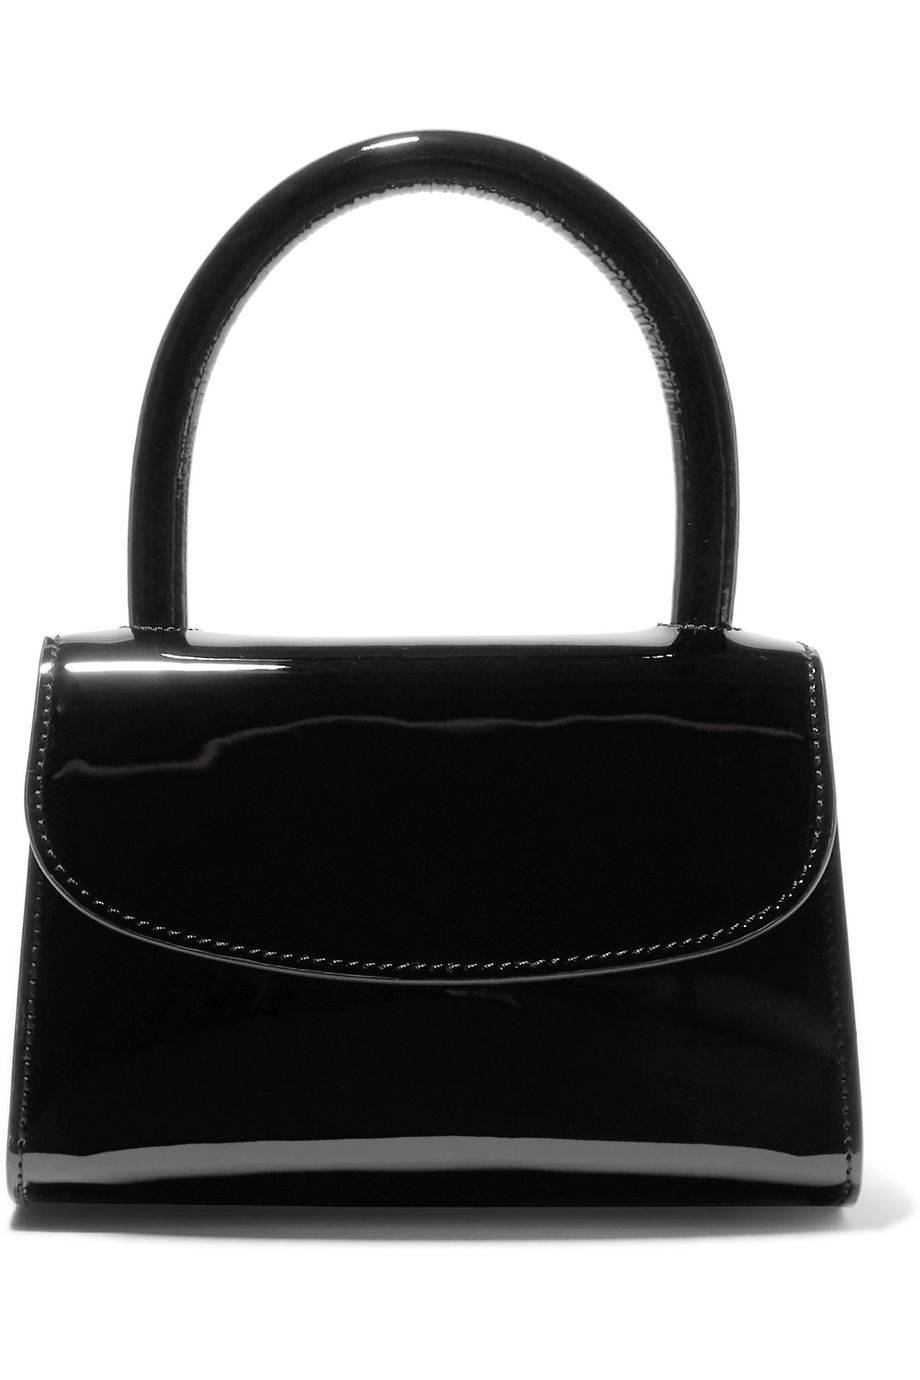 BY FAR Mini patent-leather tote